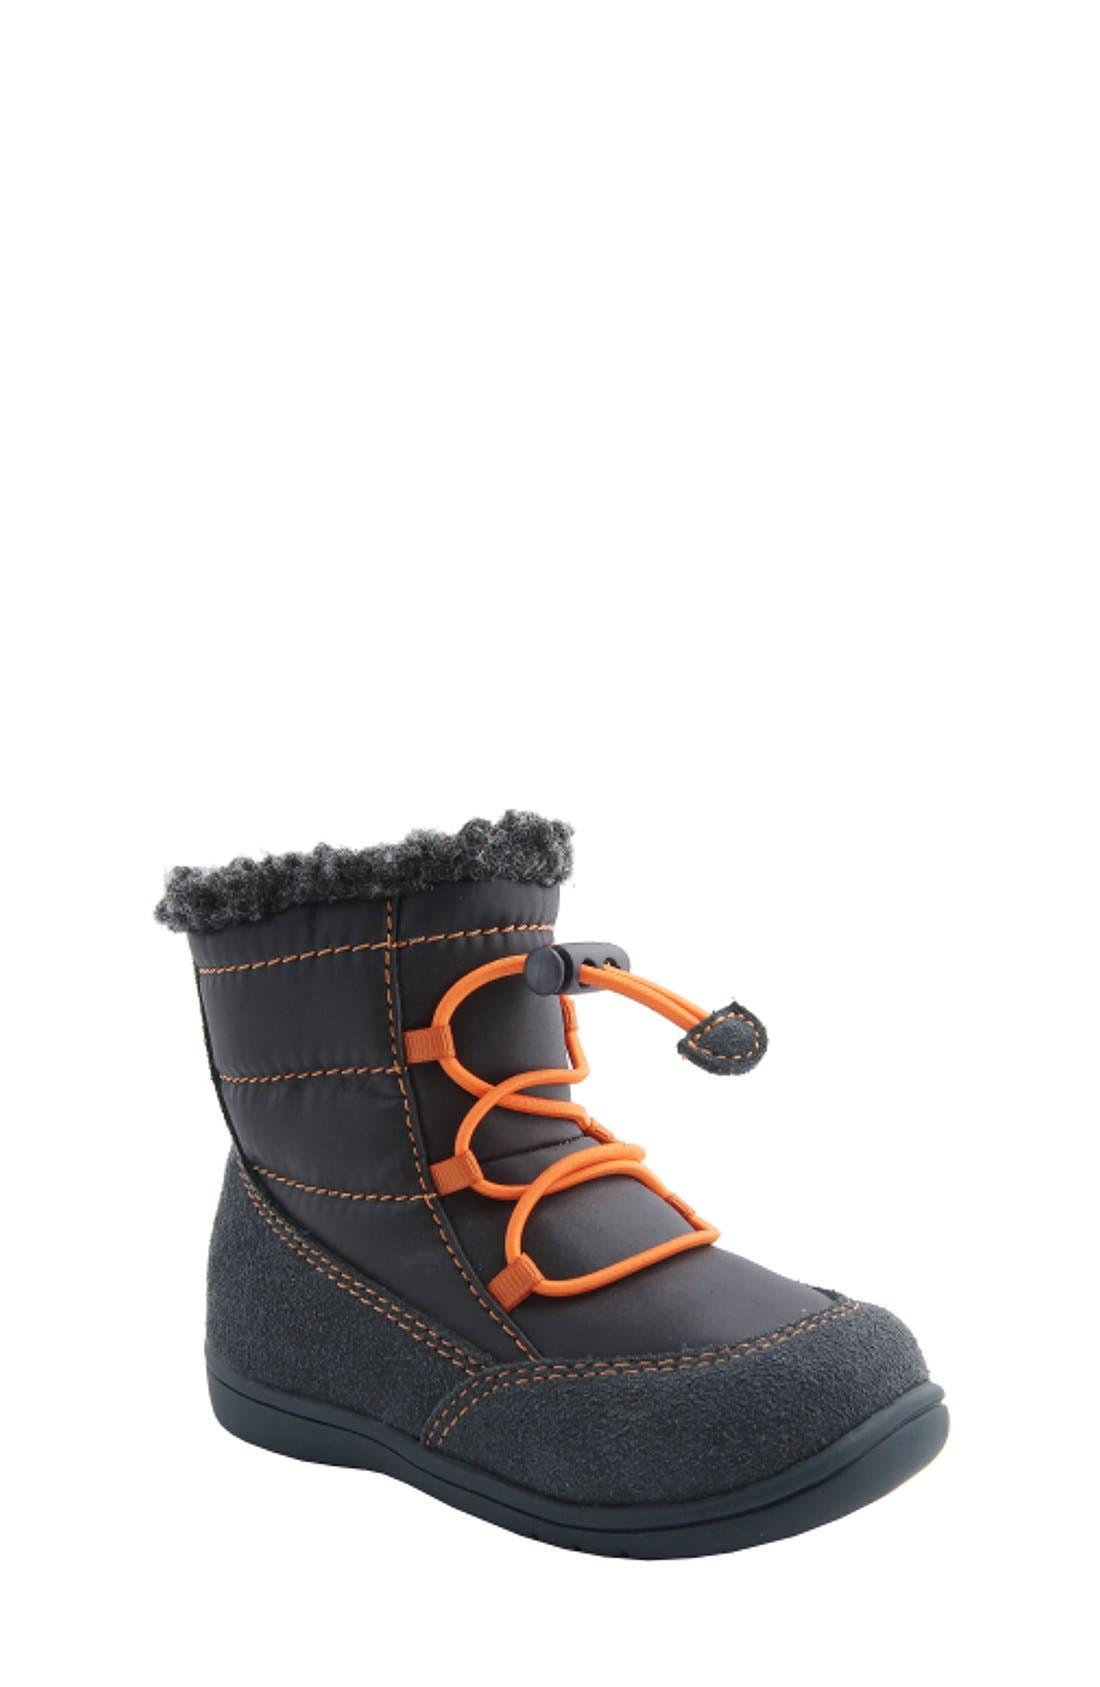 Nina 'Yolie' Lace-Up Boot (Baby & Walker)